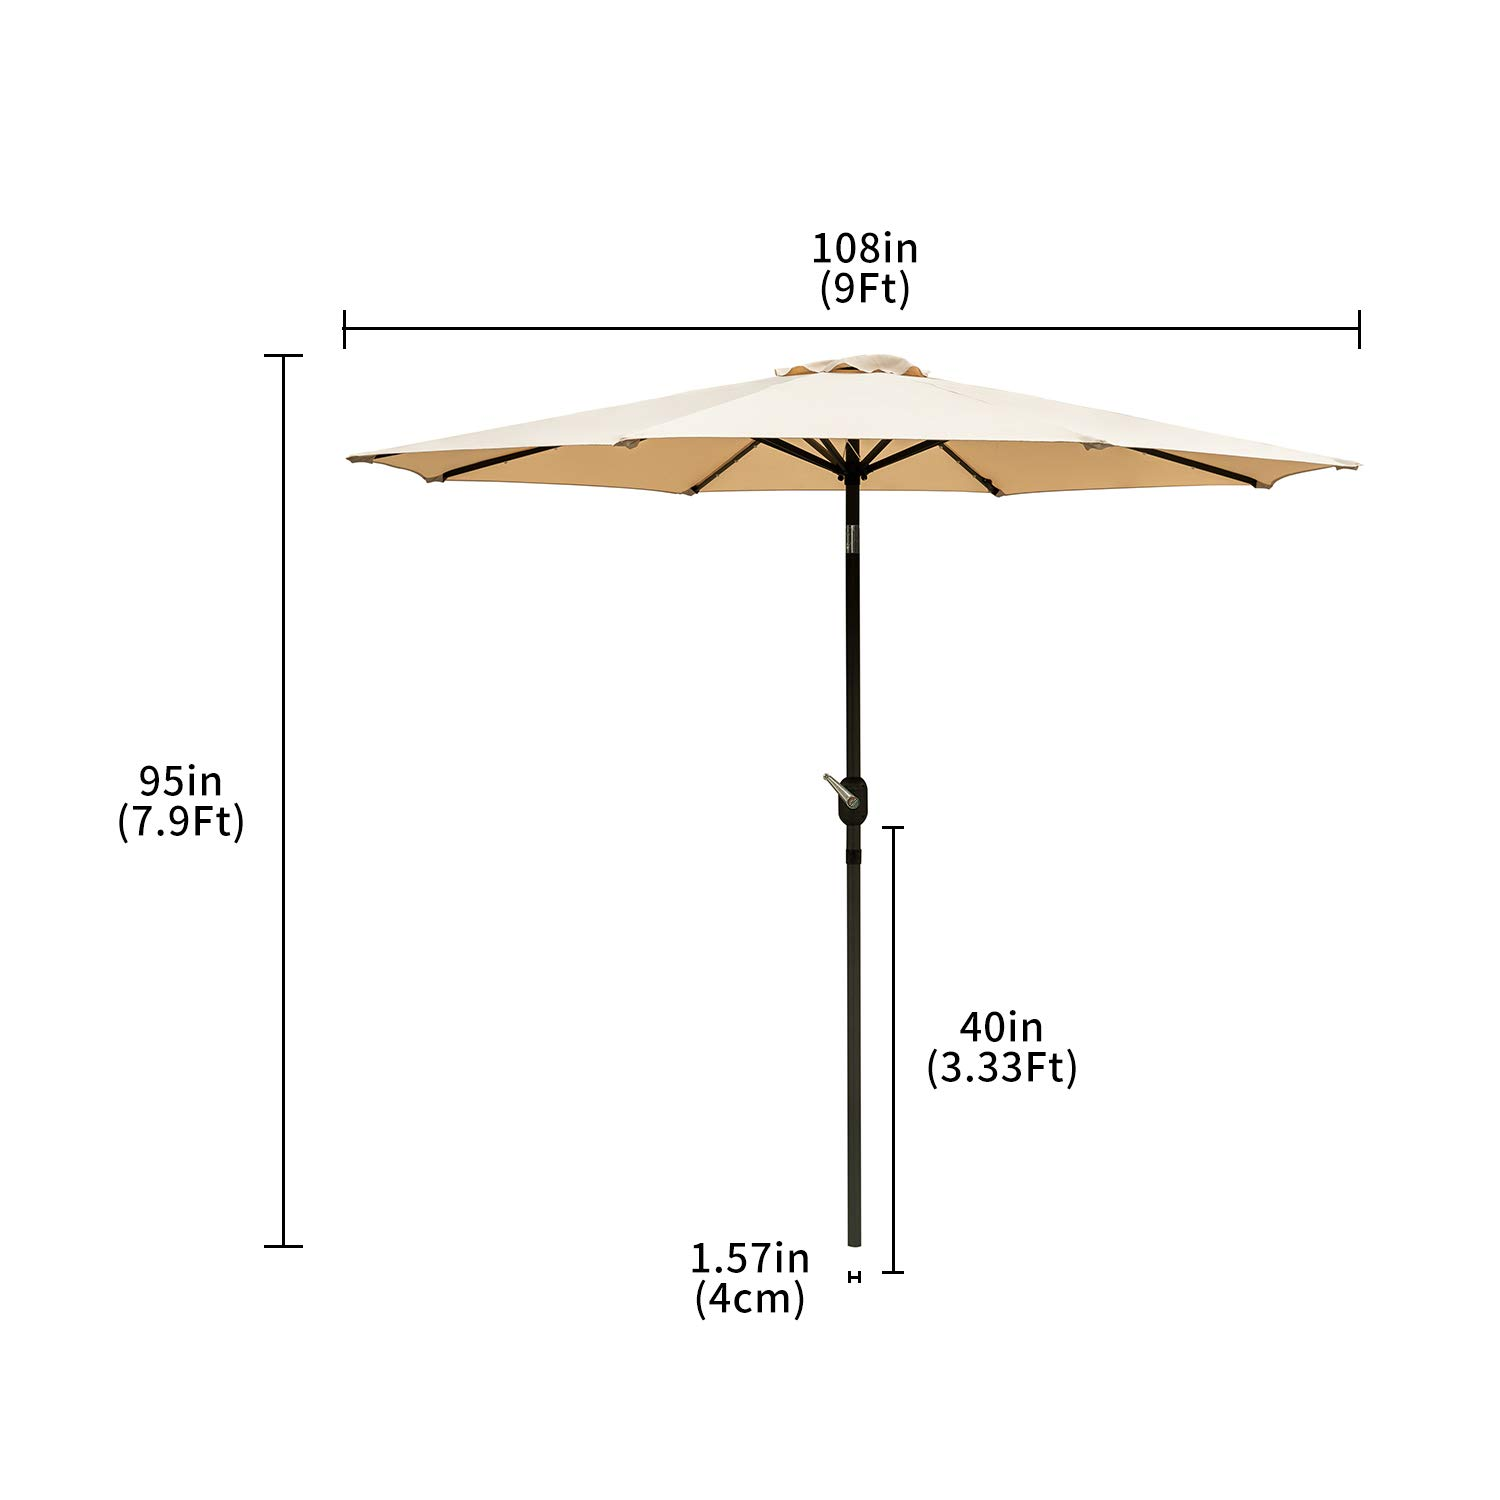 Outdoor Basic 9 Ft Patio Umbrella Solar Powered LED Lighted Fade-Resistant Table Umbrella with Wind Vent Beige